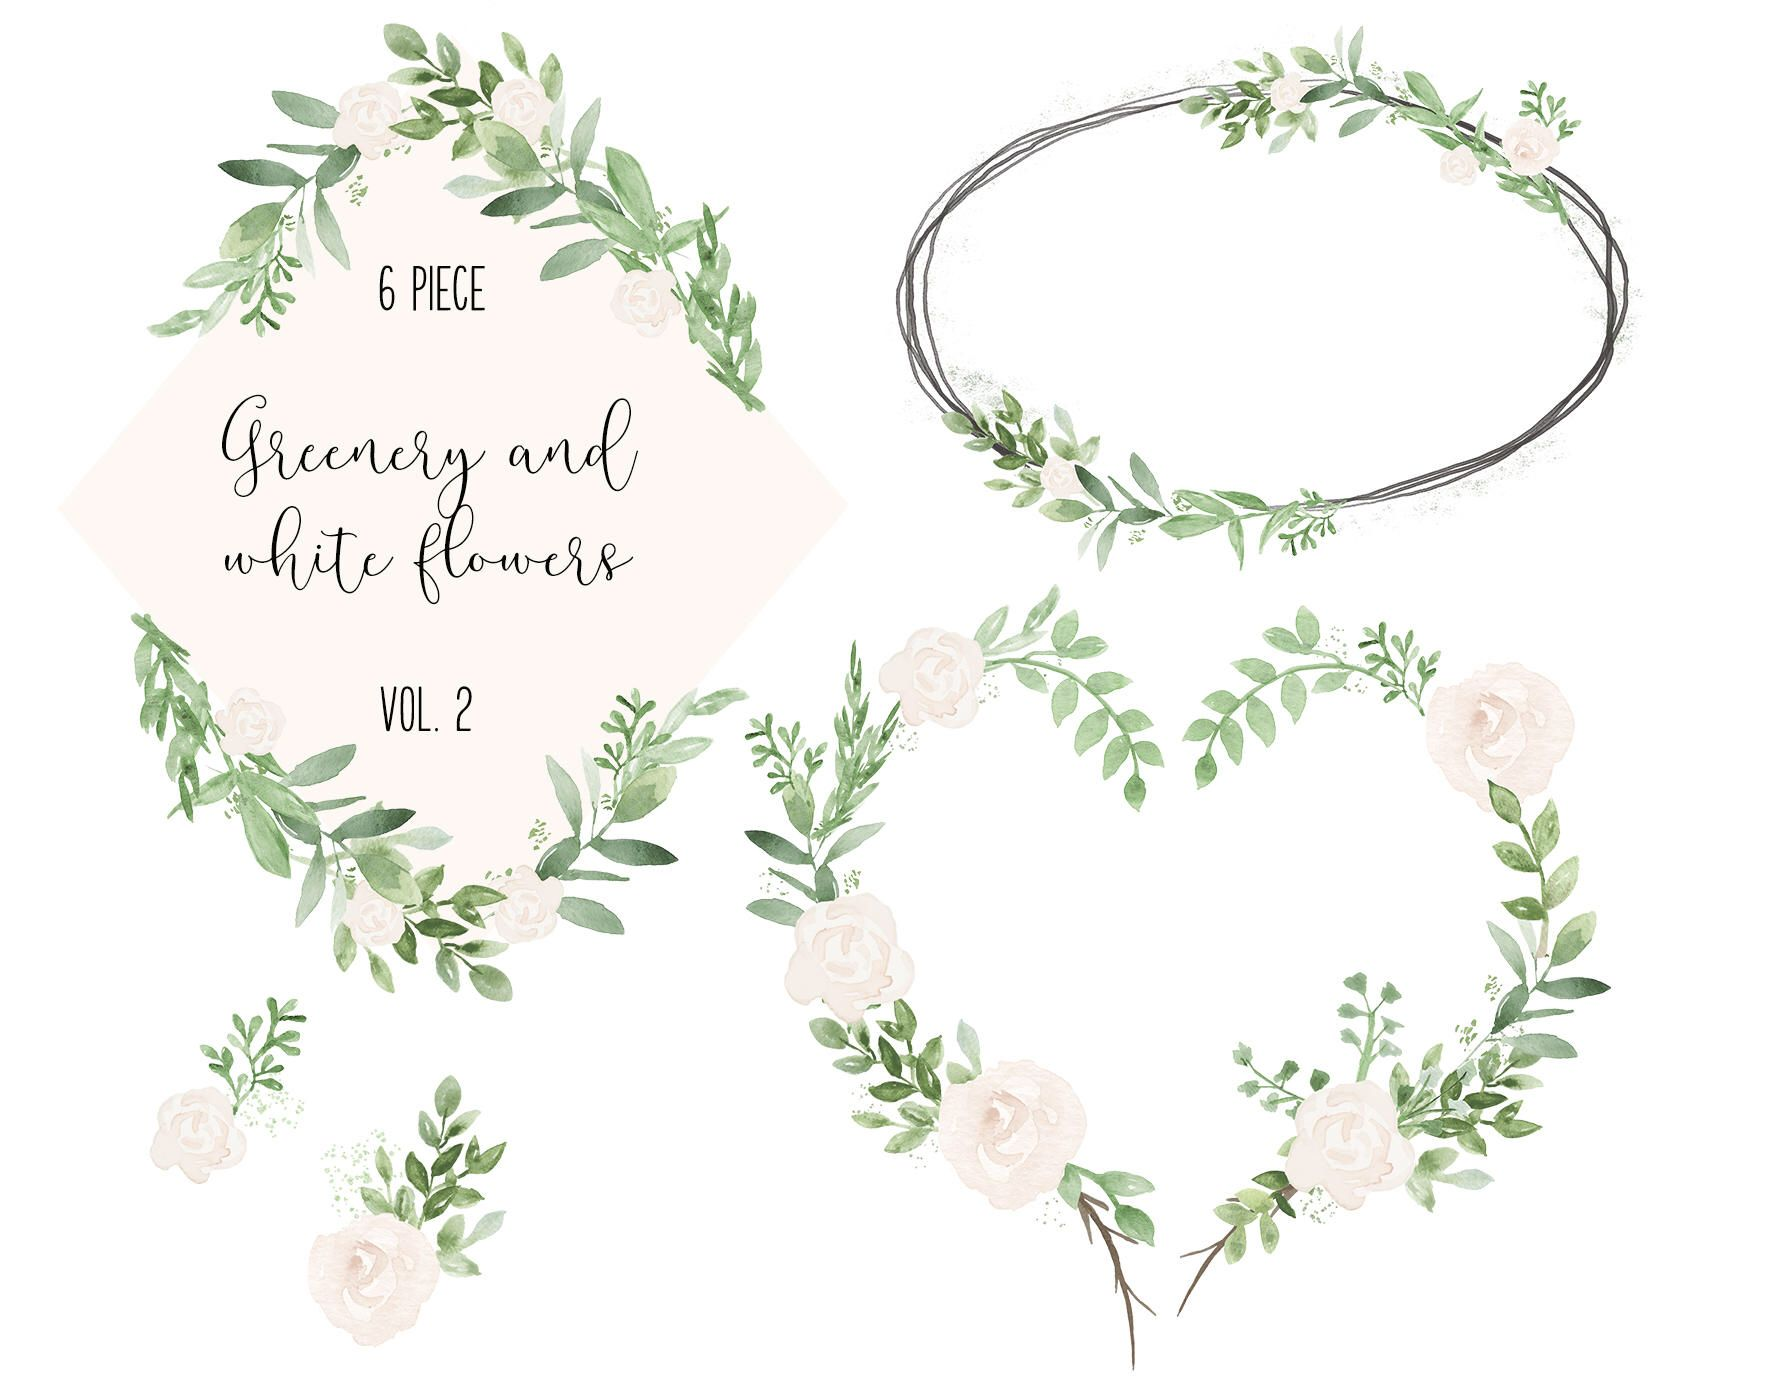 6 Greenery and white flowers watercolor set VOLUME 2.